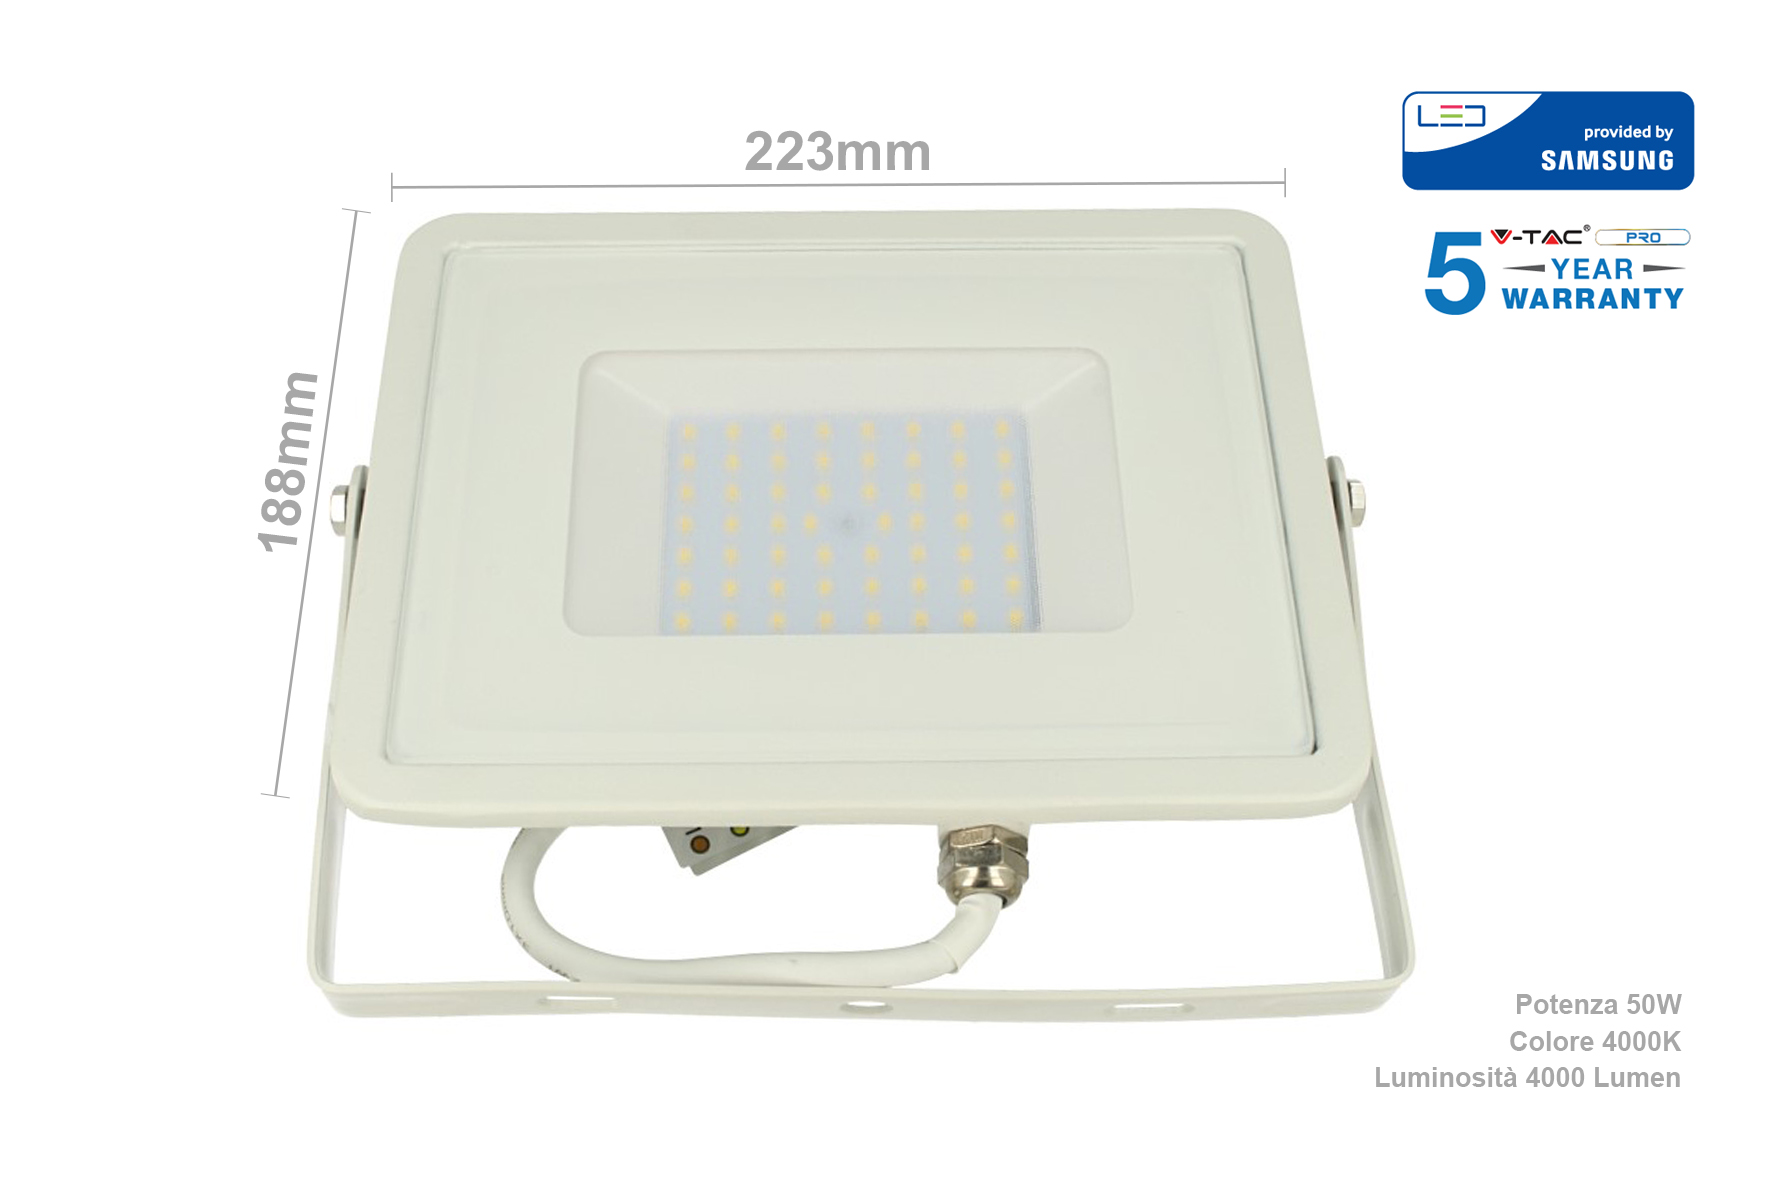 Faro Led Flood Light 50W IP65 Bianco Neutro Super Slim 28mm Carcassa Bianca Samsung Garanzia 5 Anni SKU-410 - KIT